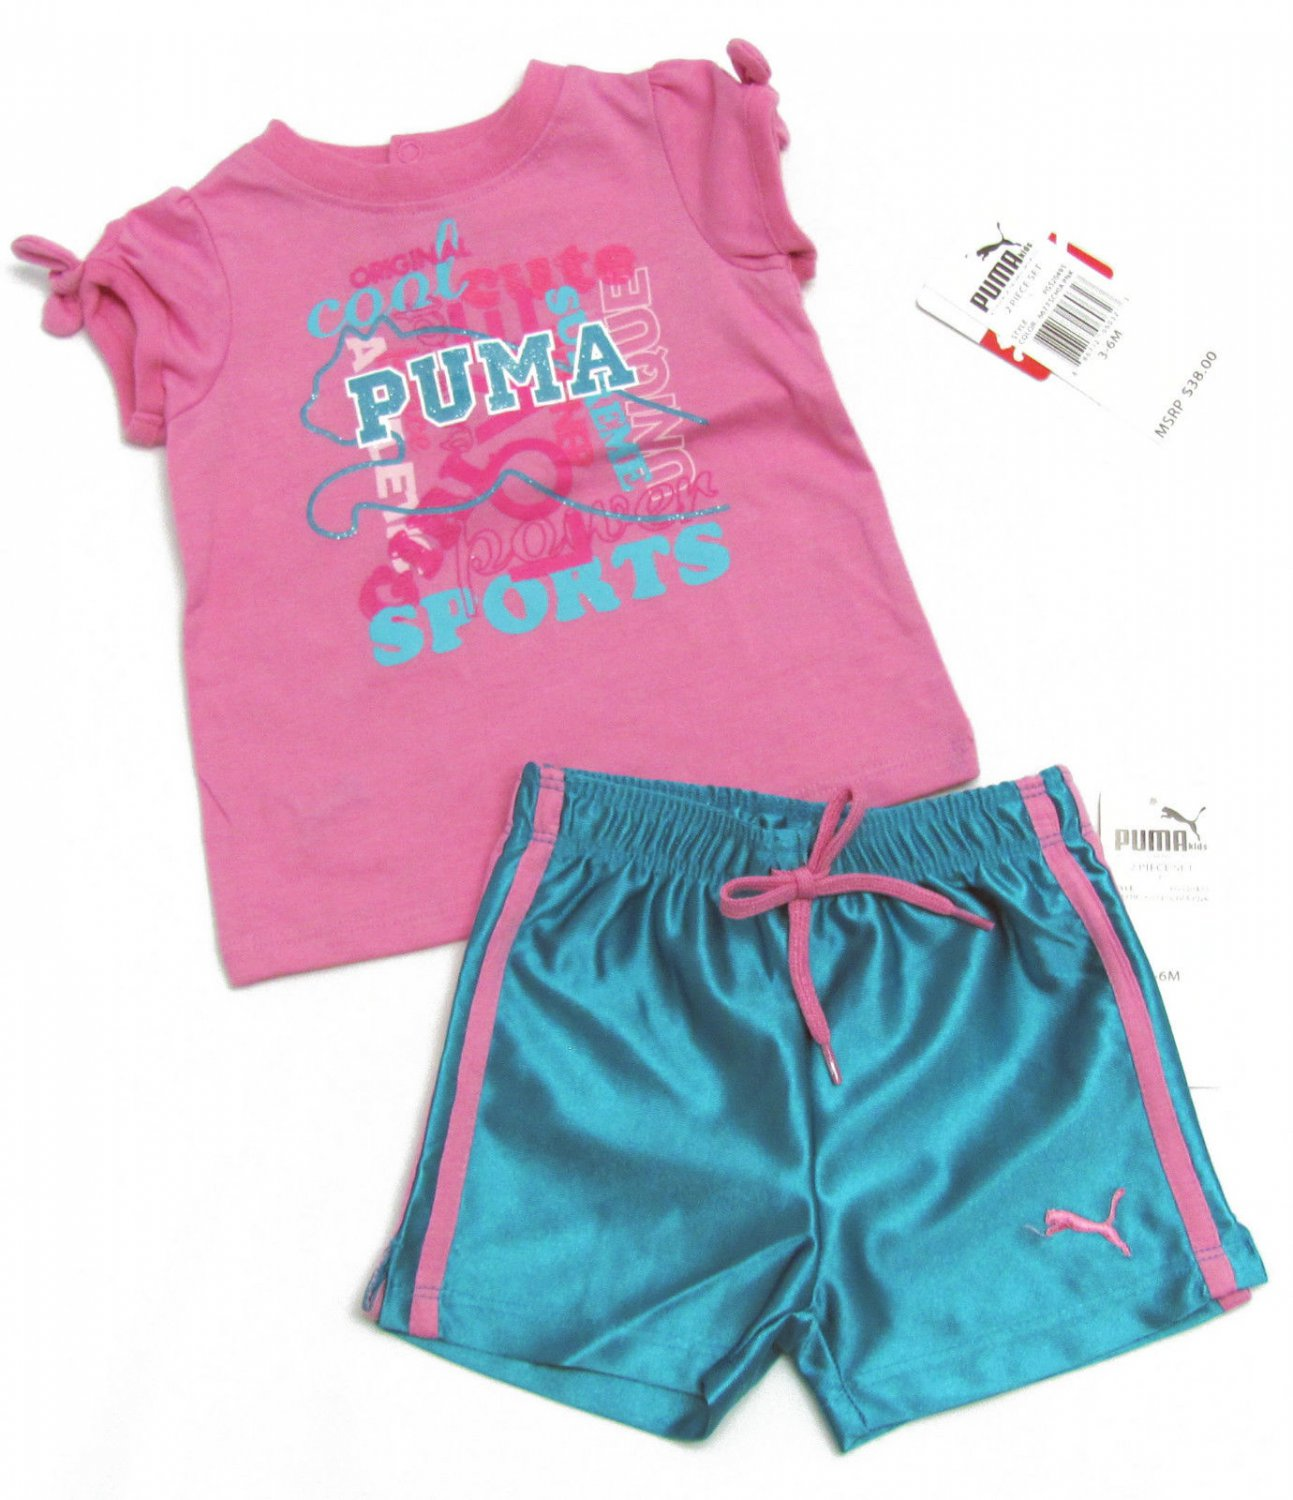 Puma Baby Girls 3-6 Months Pink T-Shirt and Blue Gym Shorts Girl's 2-Piece Set